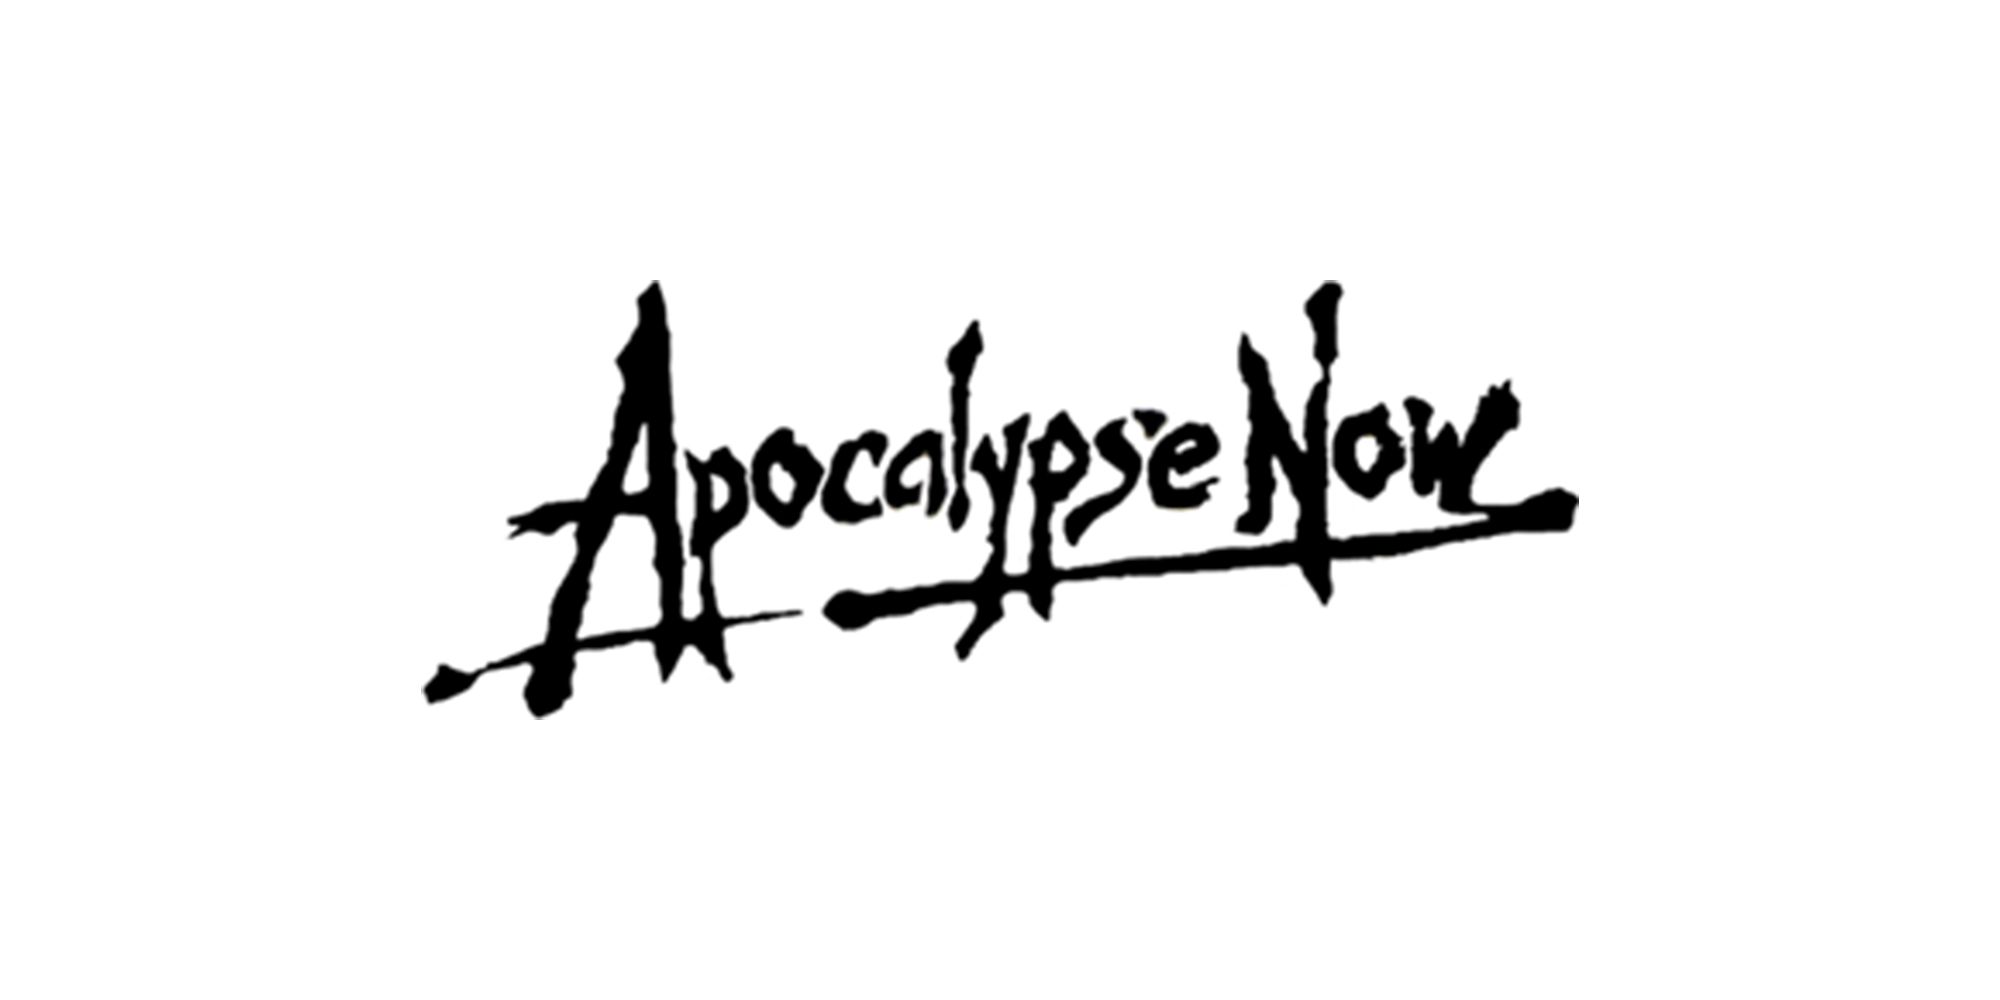 Apocalypse Now Is Finally Going To Get A Video Game